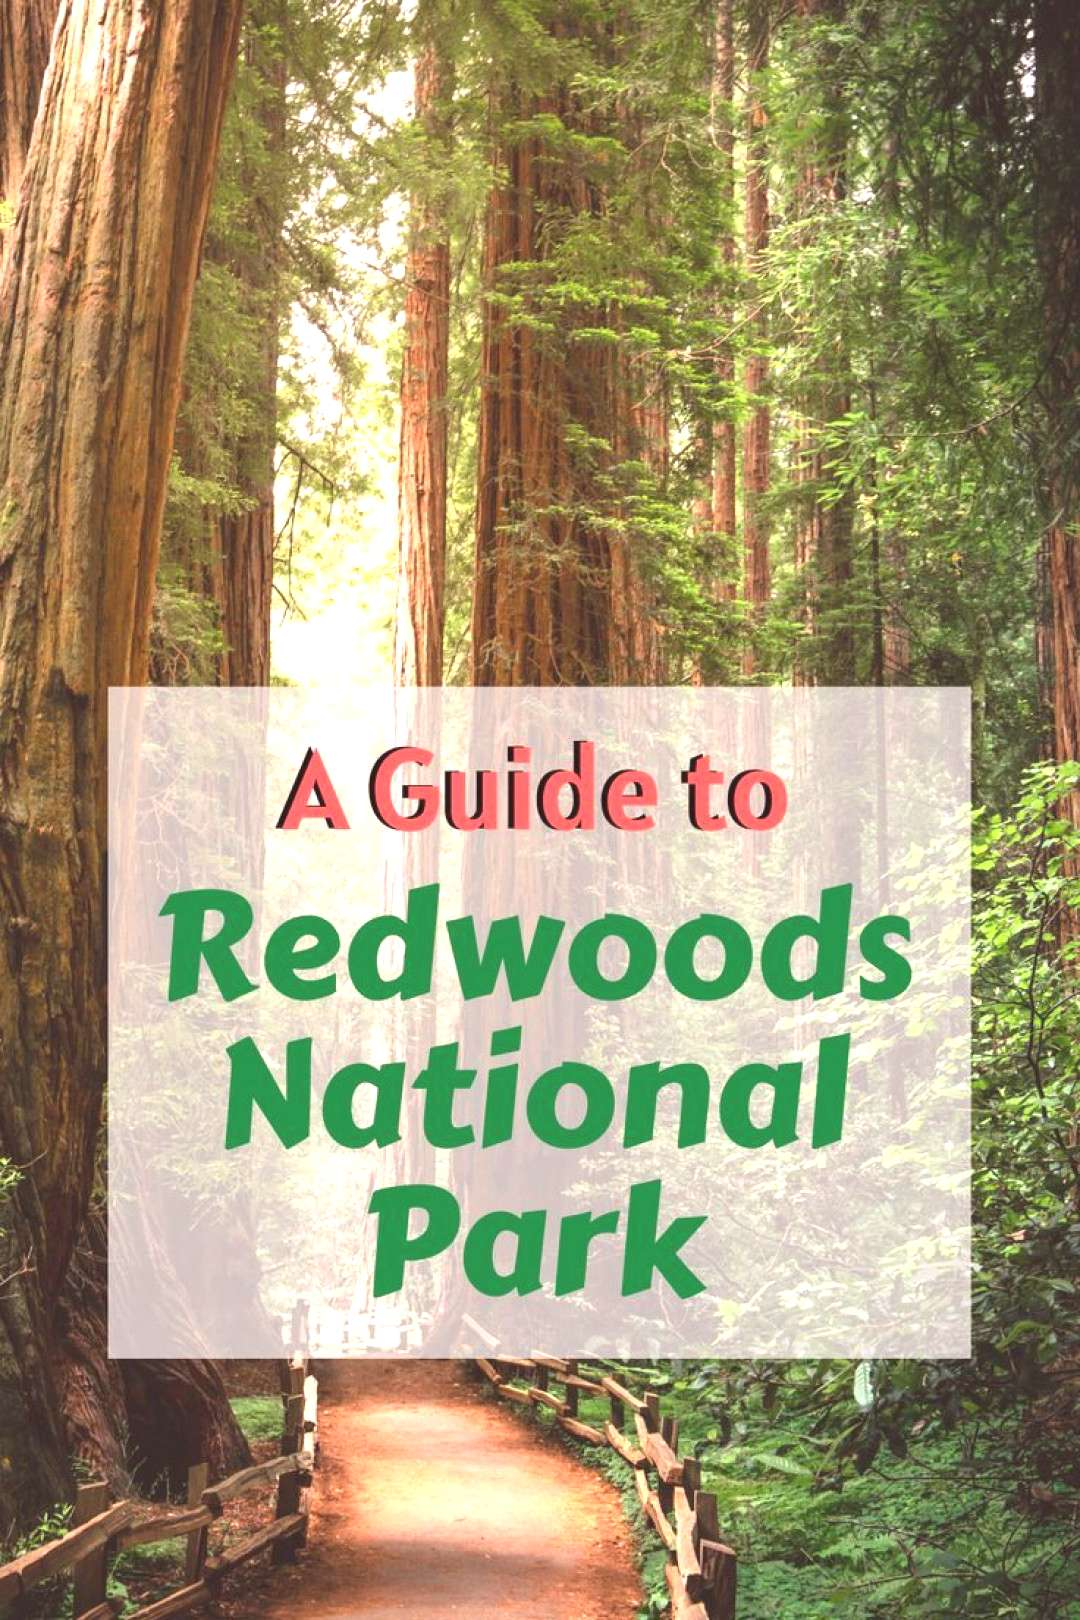 A Guide to Redwoods National Park Read all about the in Northern California, with information about